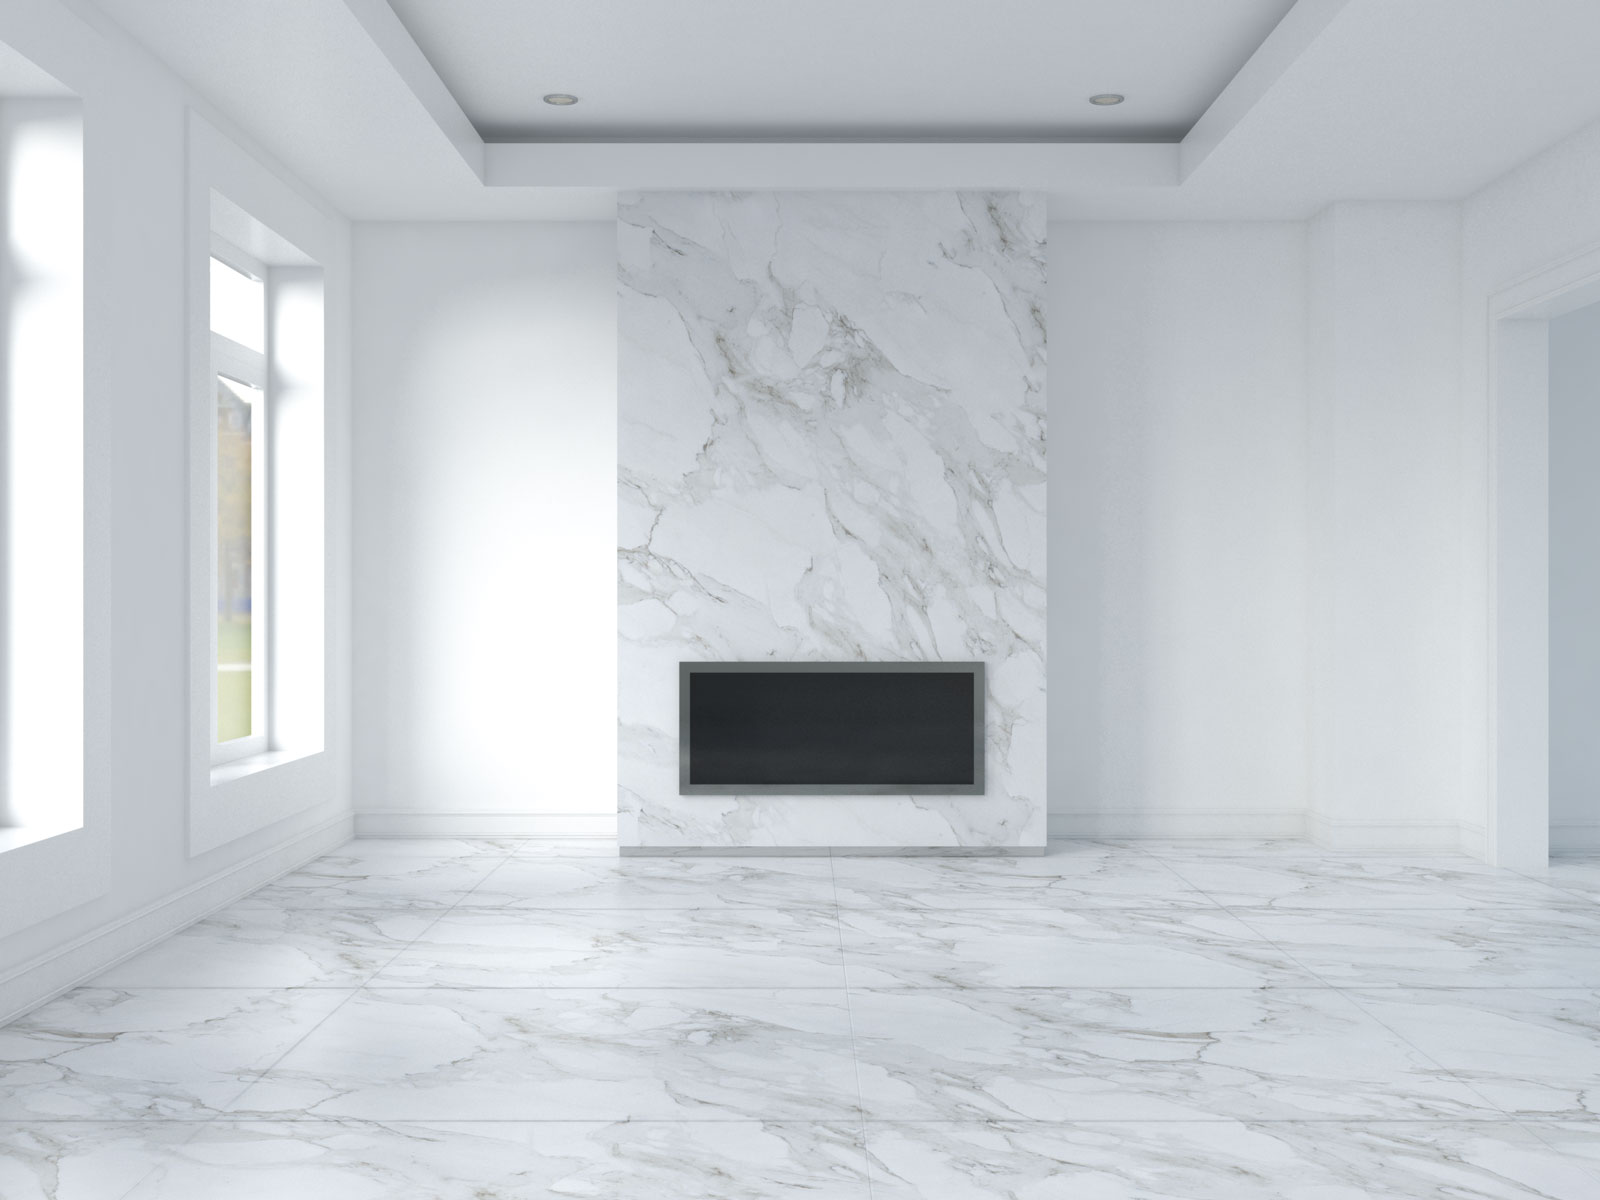 White walls with carrara marble flooring